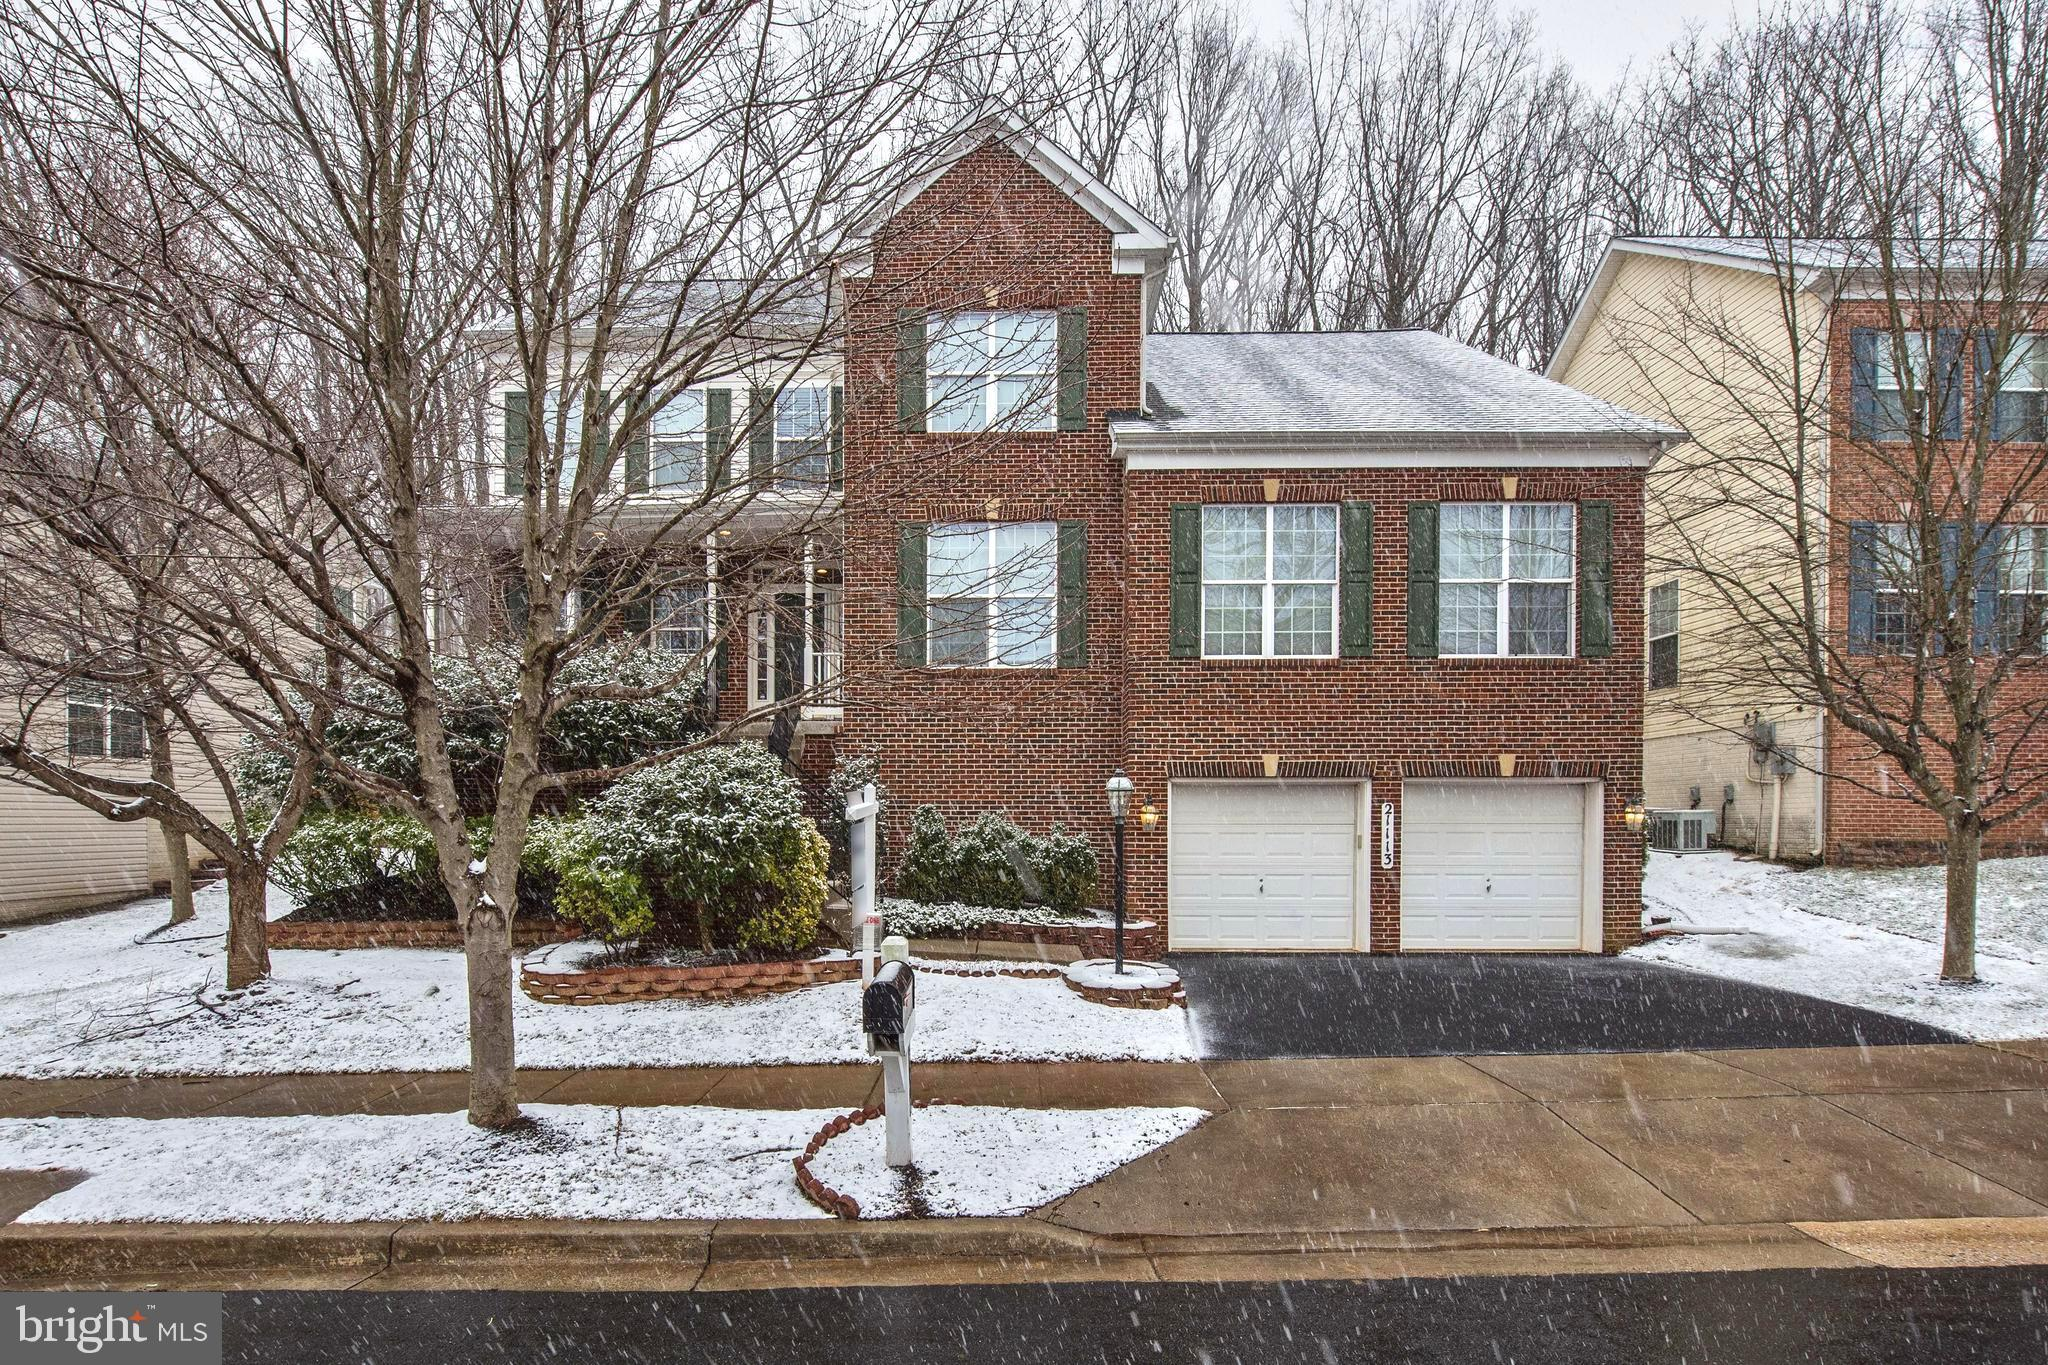 21113 HICKORY FOREST WAY, GERMANTOWN, MD 20876